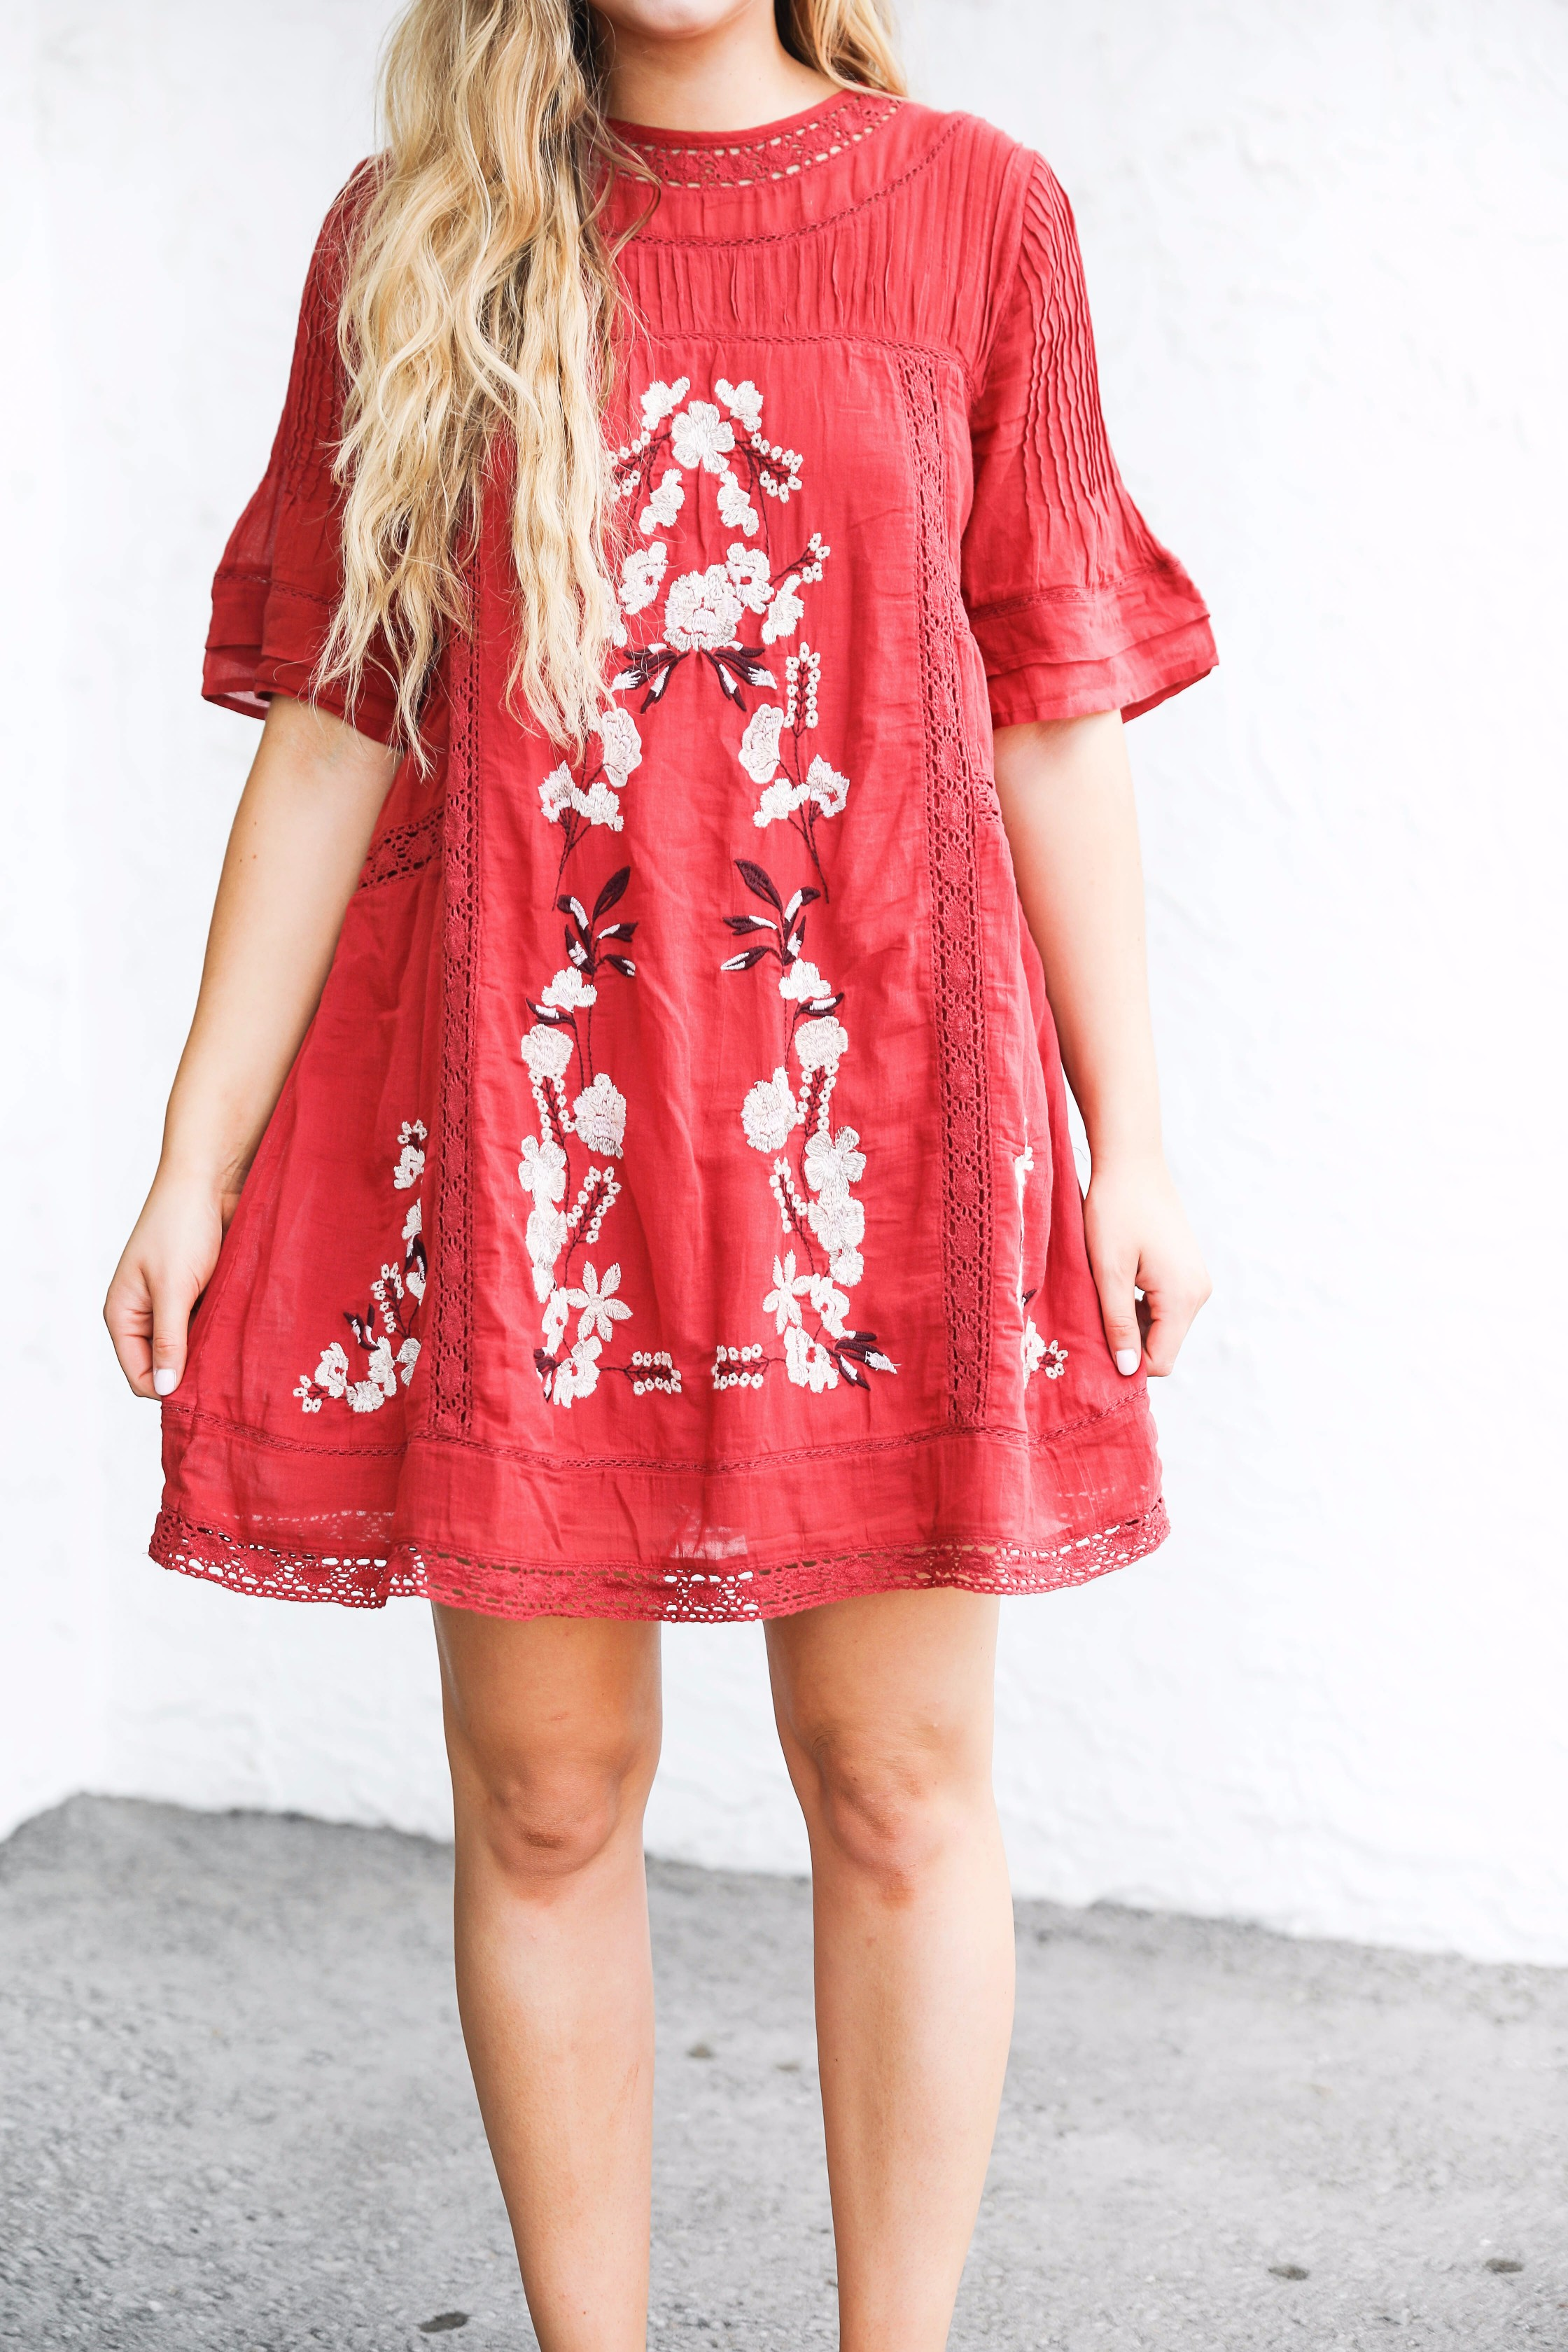 Red free people fall dress! I love this bright red color for fall. There are so many ways to wear this! It would be super cute with boots or booties! by fashion blogger lauren lindmark on daily dose of charm